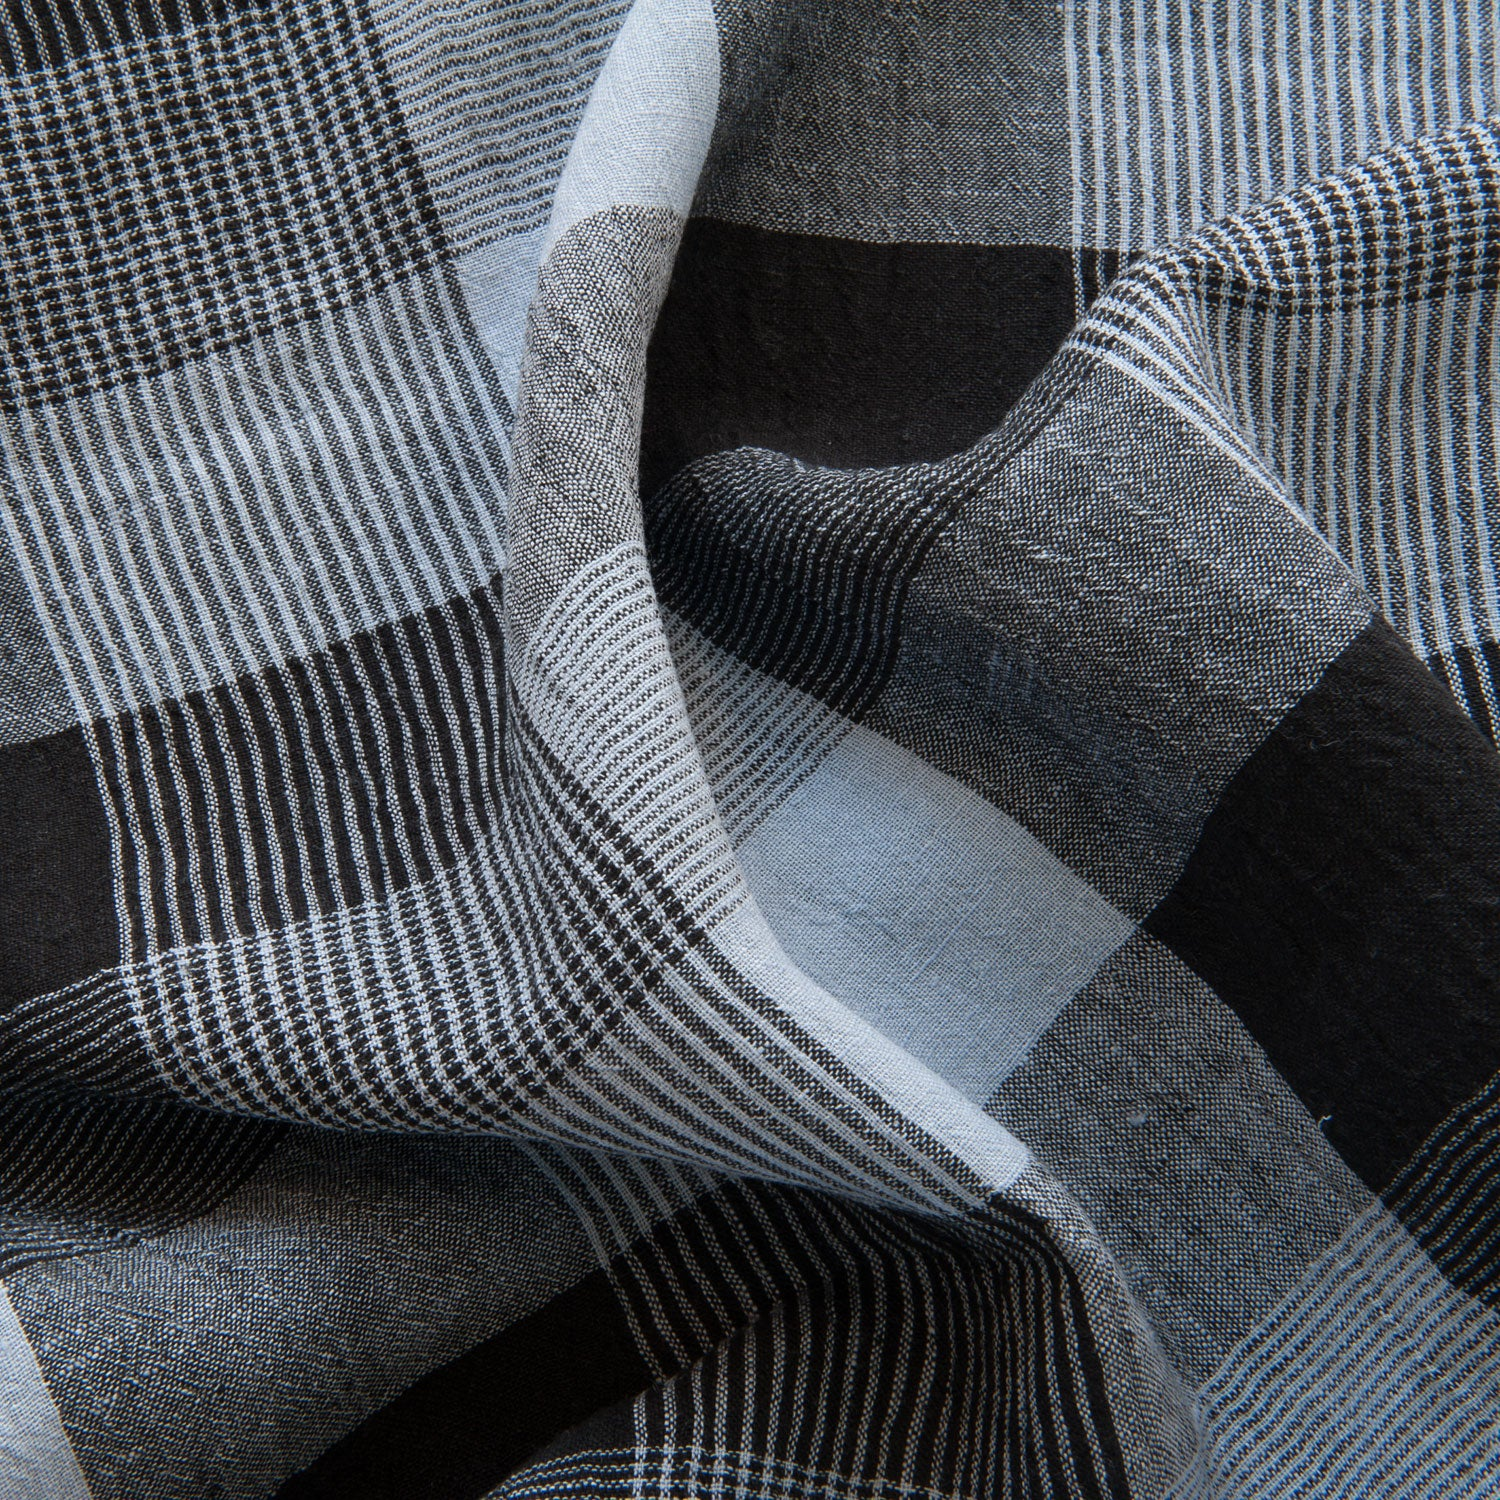 Checked Linen in Blue and Black